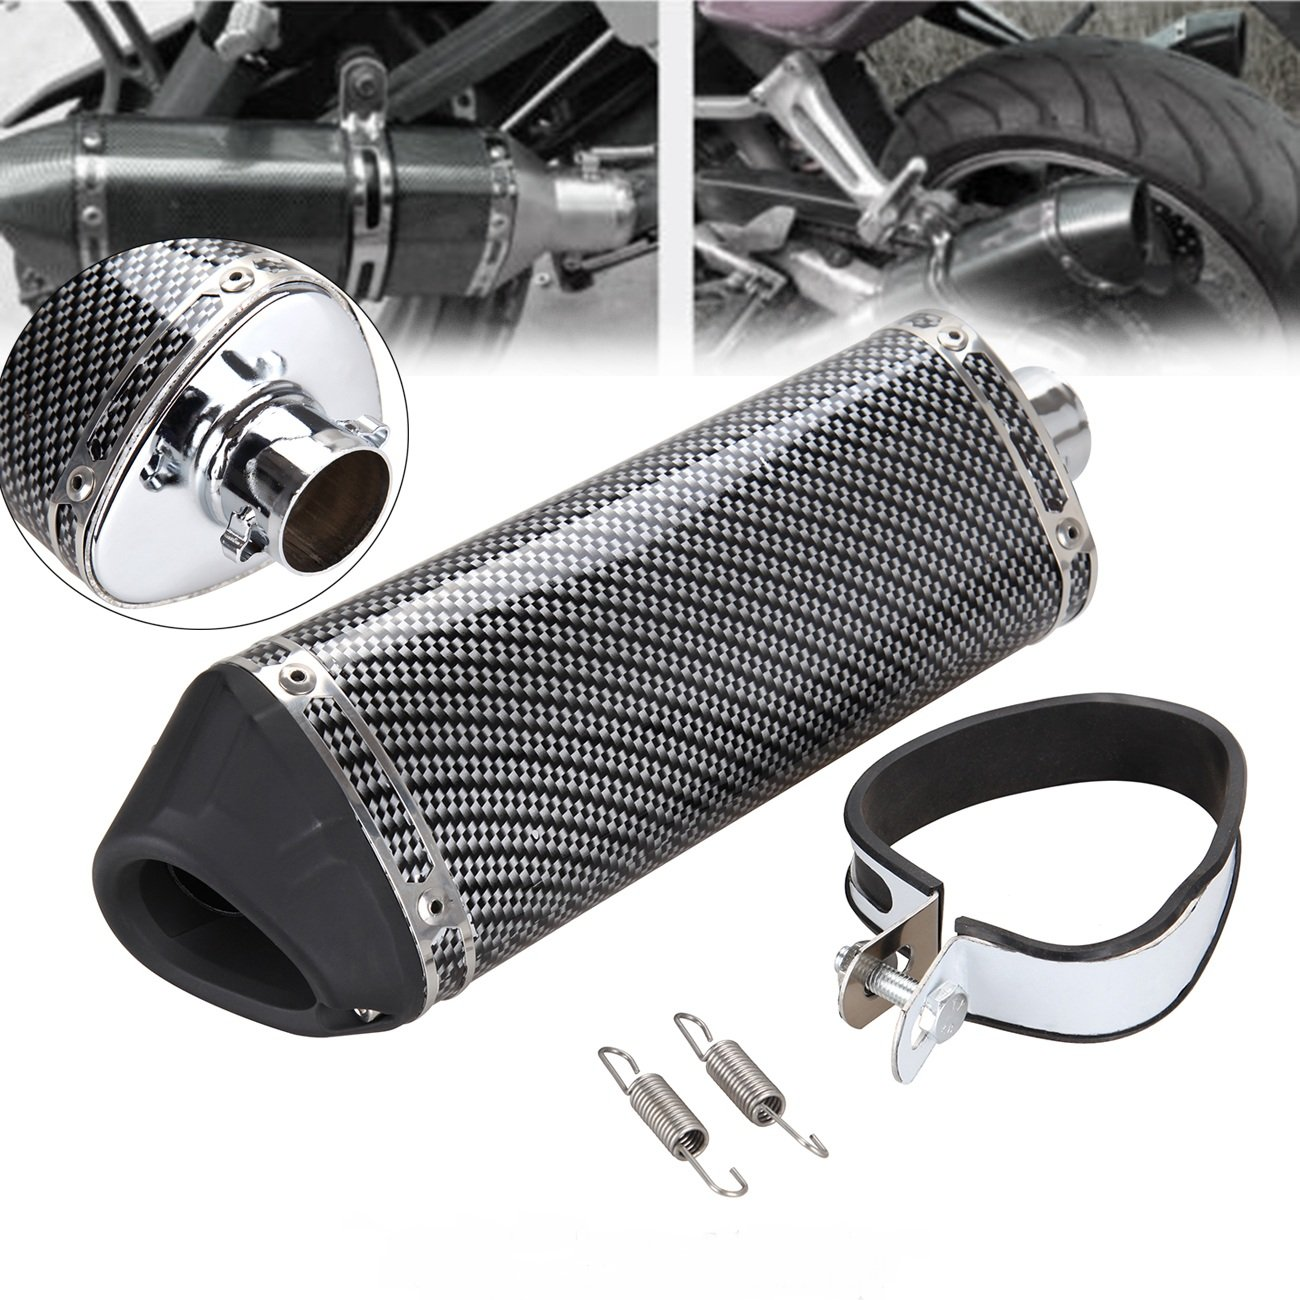 Ridgeyard Universal Carbon Fiber 38mm Motorcycle Exhaust Muffler Pipe Silencer DB Killer 38mm Ridgeyard Co .ltd